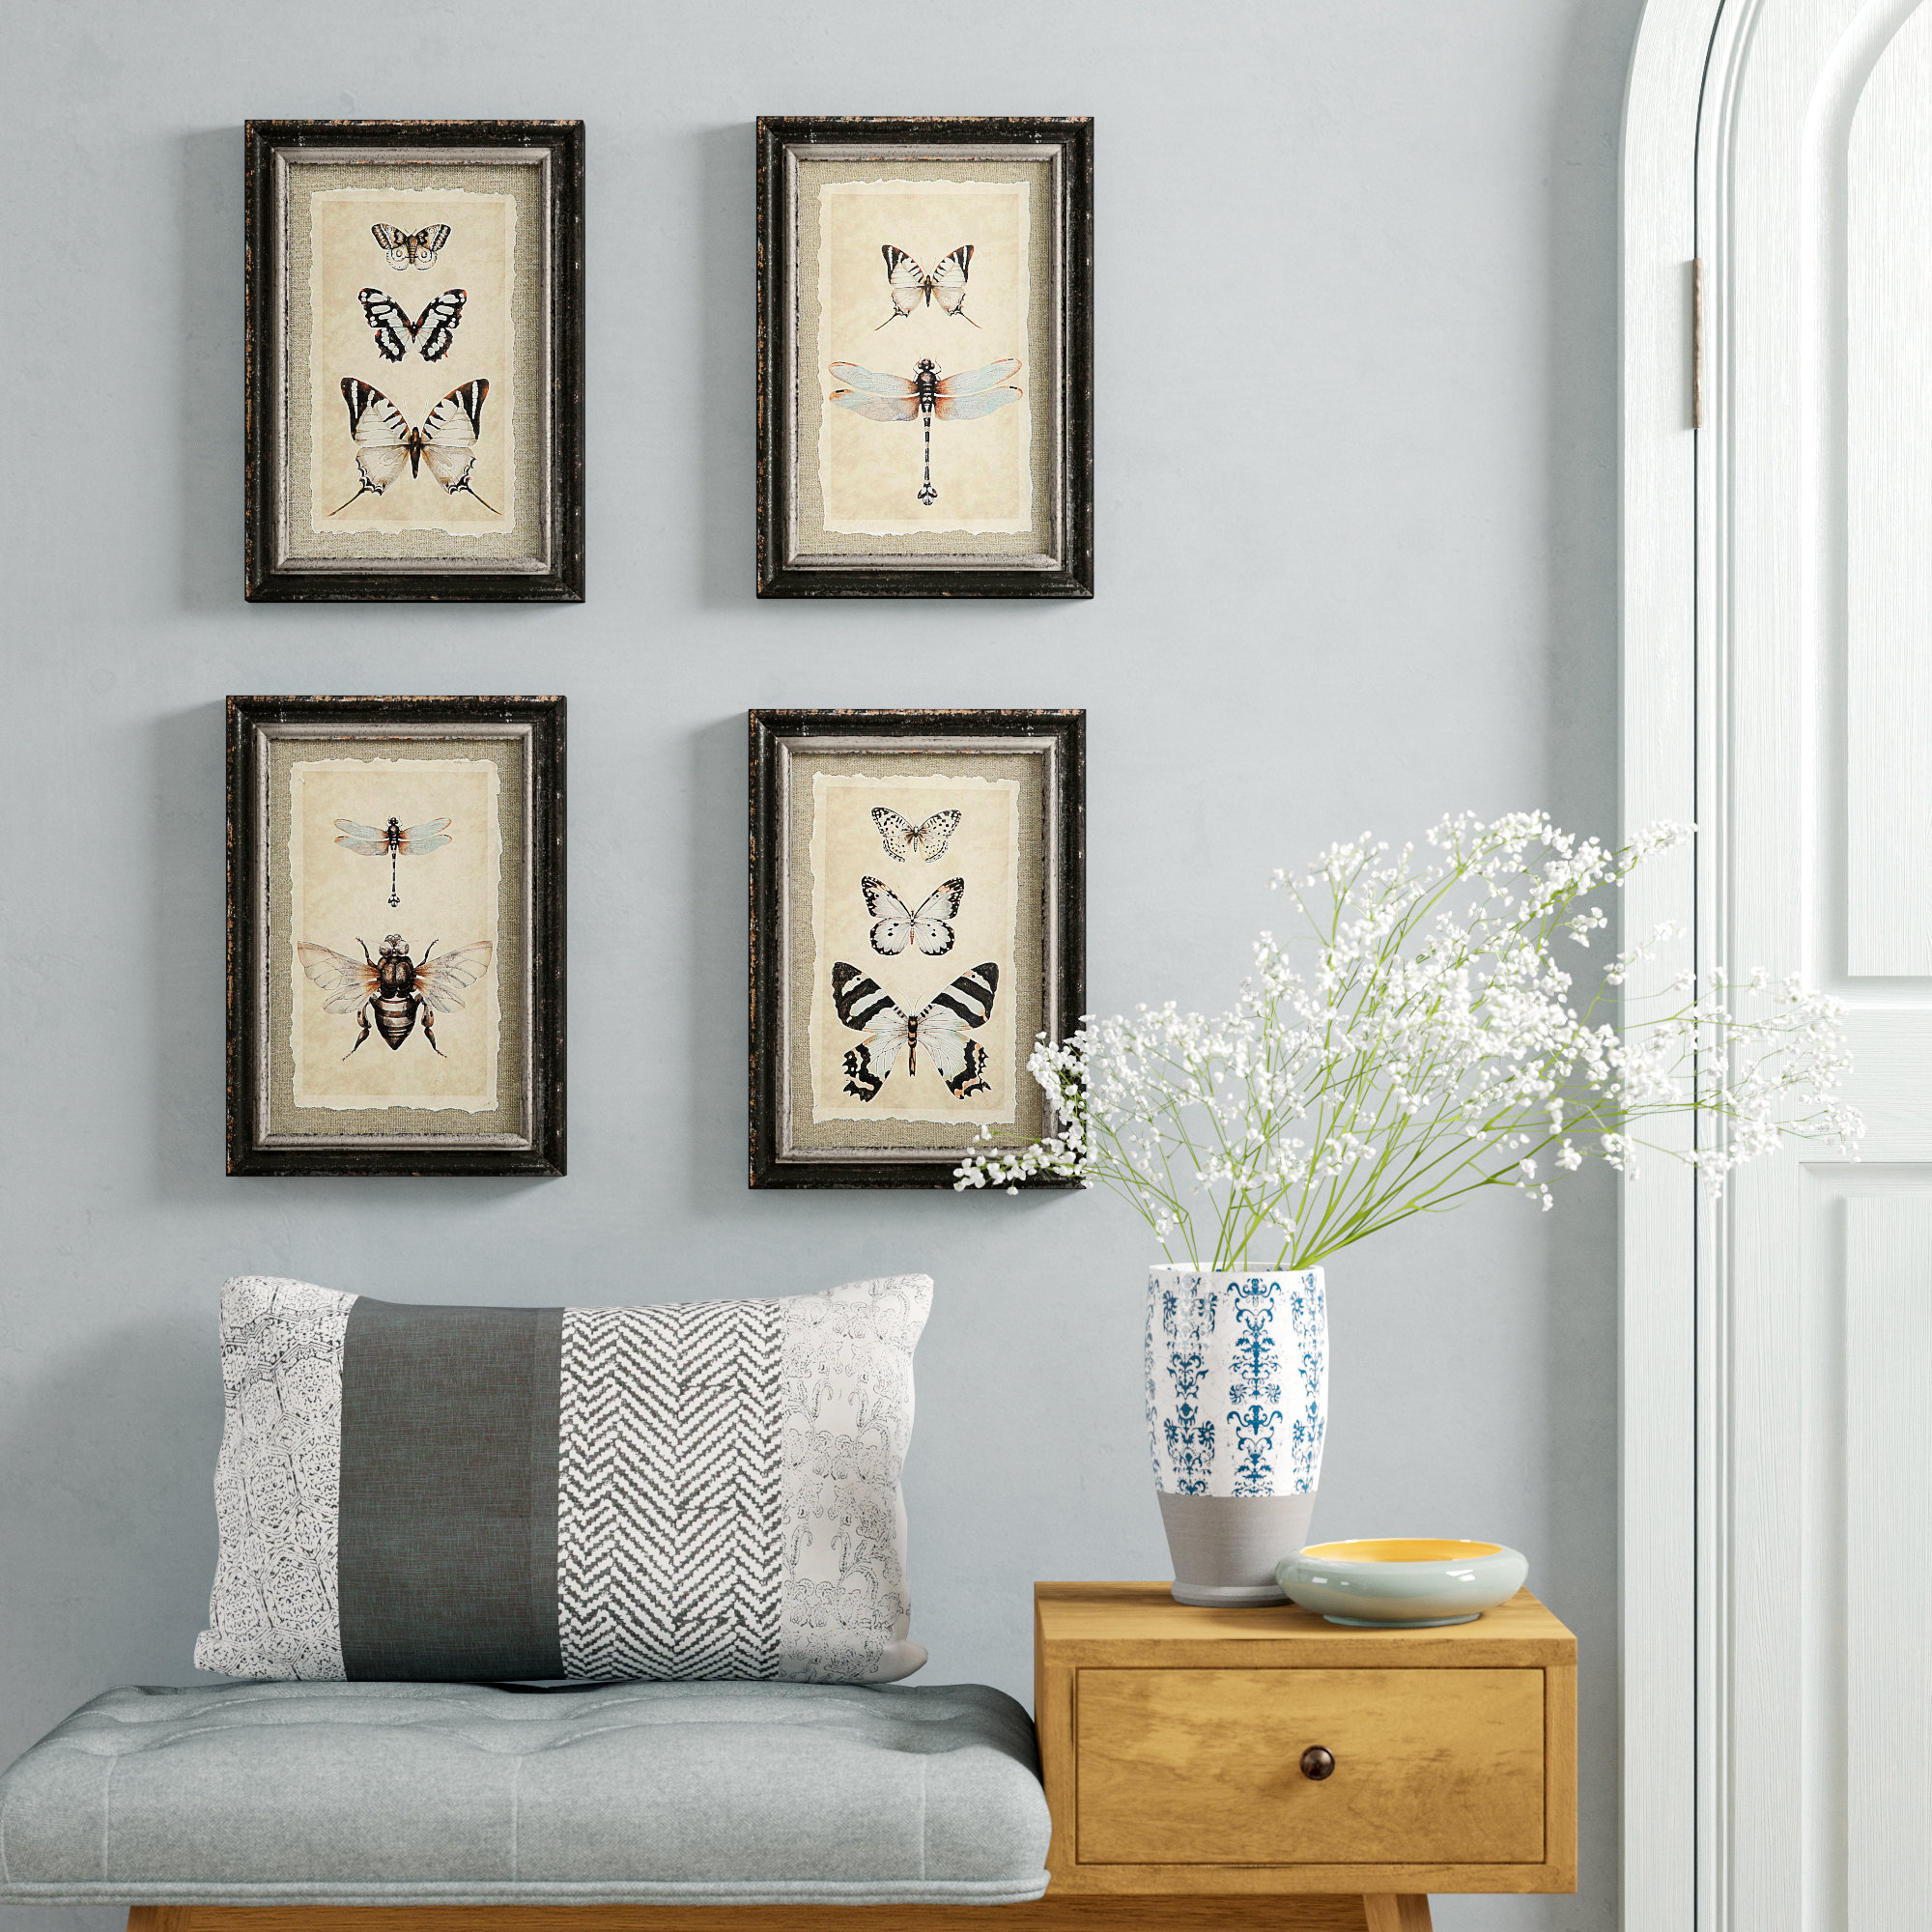 'wood Framed Vintage Insect Prints' 4 Piece Framed Graphic Art Print Set On Wood Throughout 4 Piece Wall Decor Sets By Charlton Home (View 3 of 30)